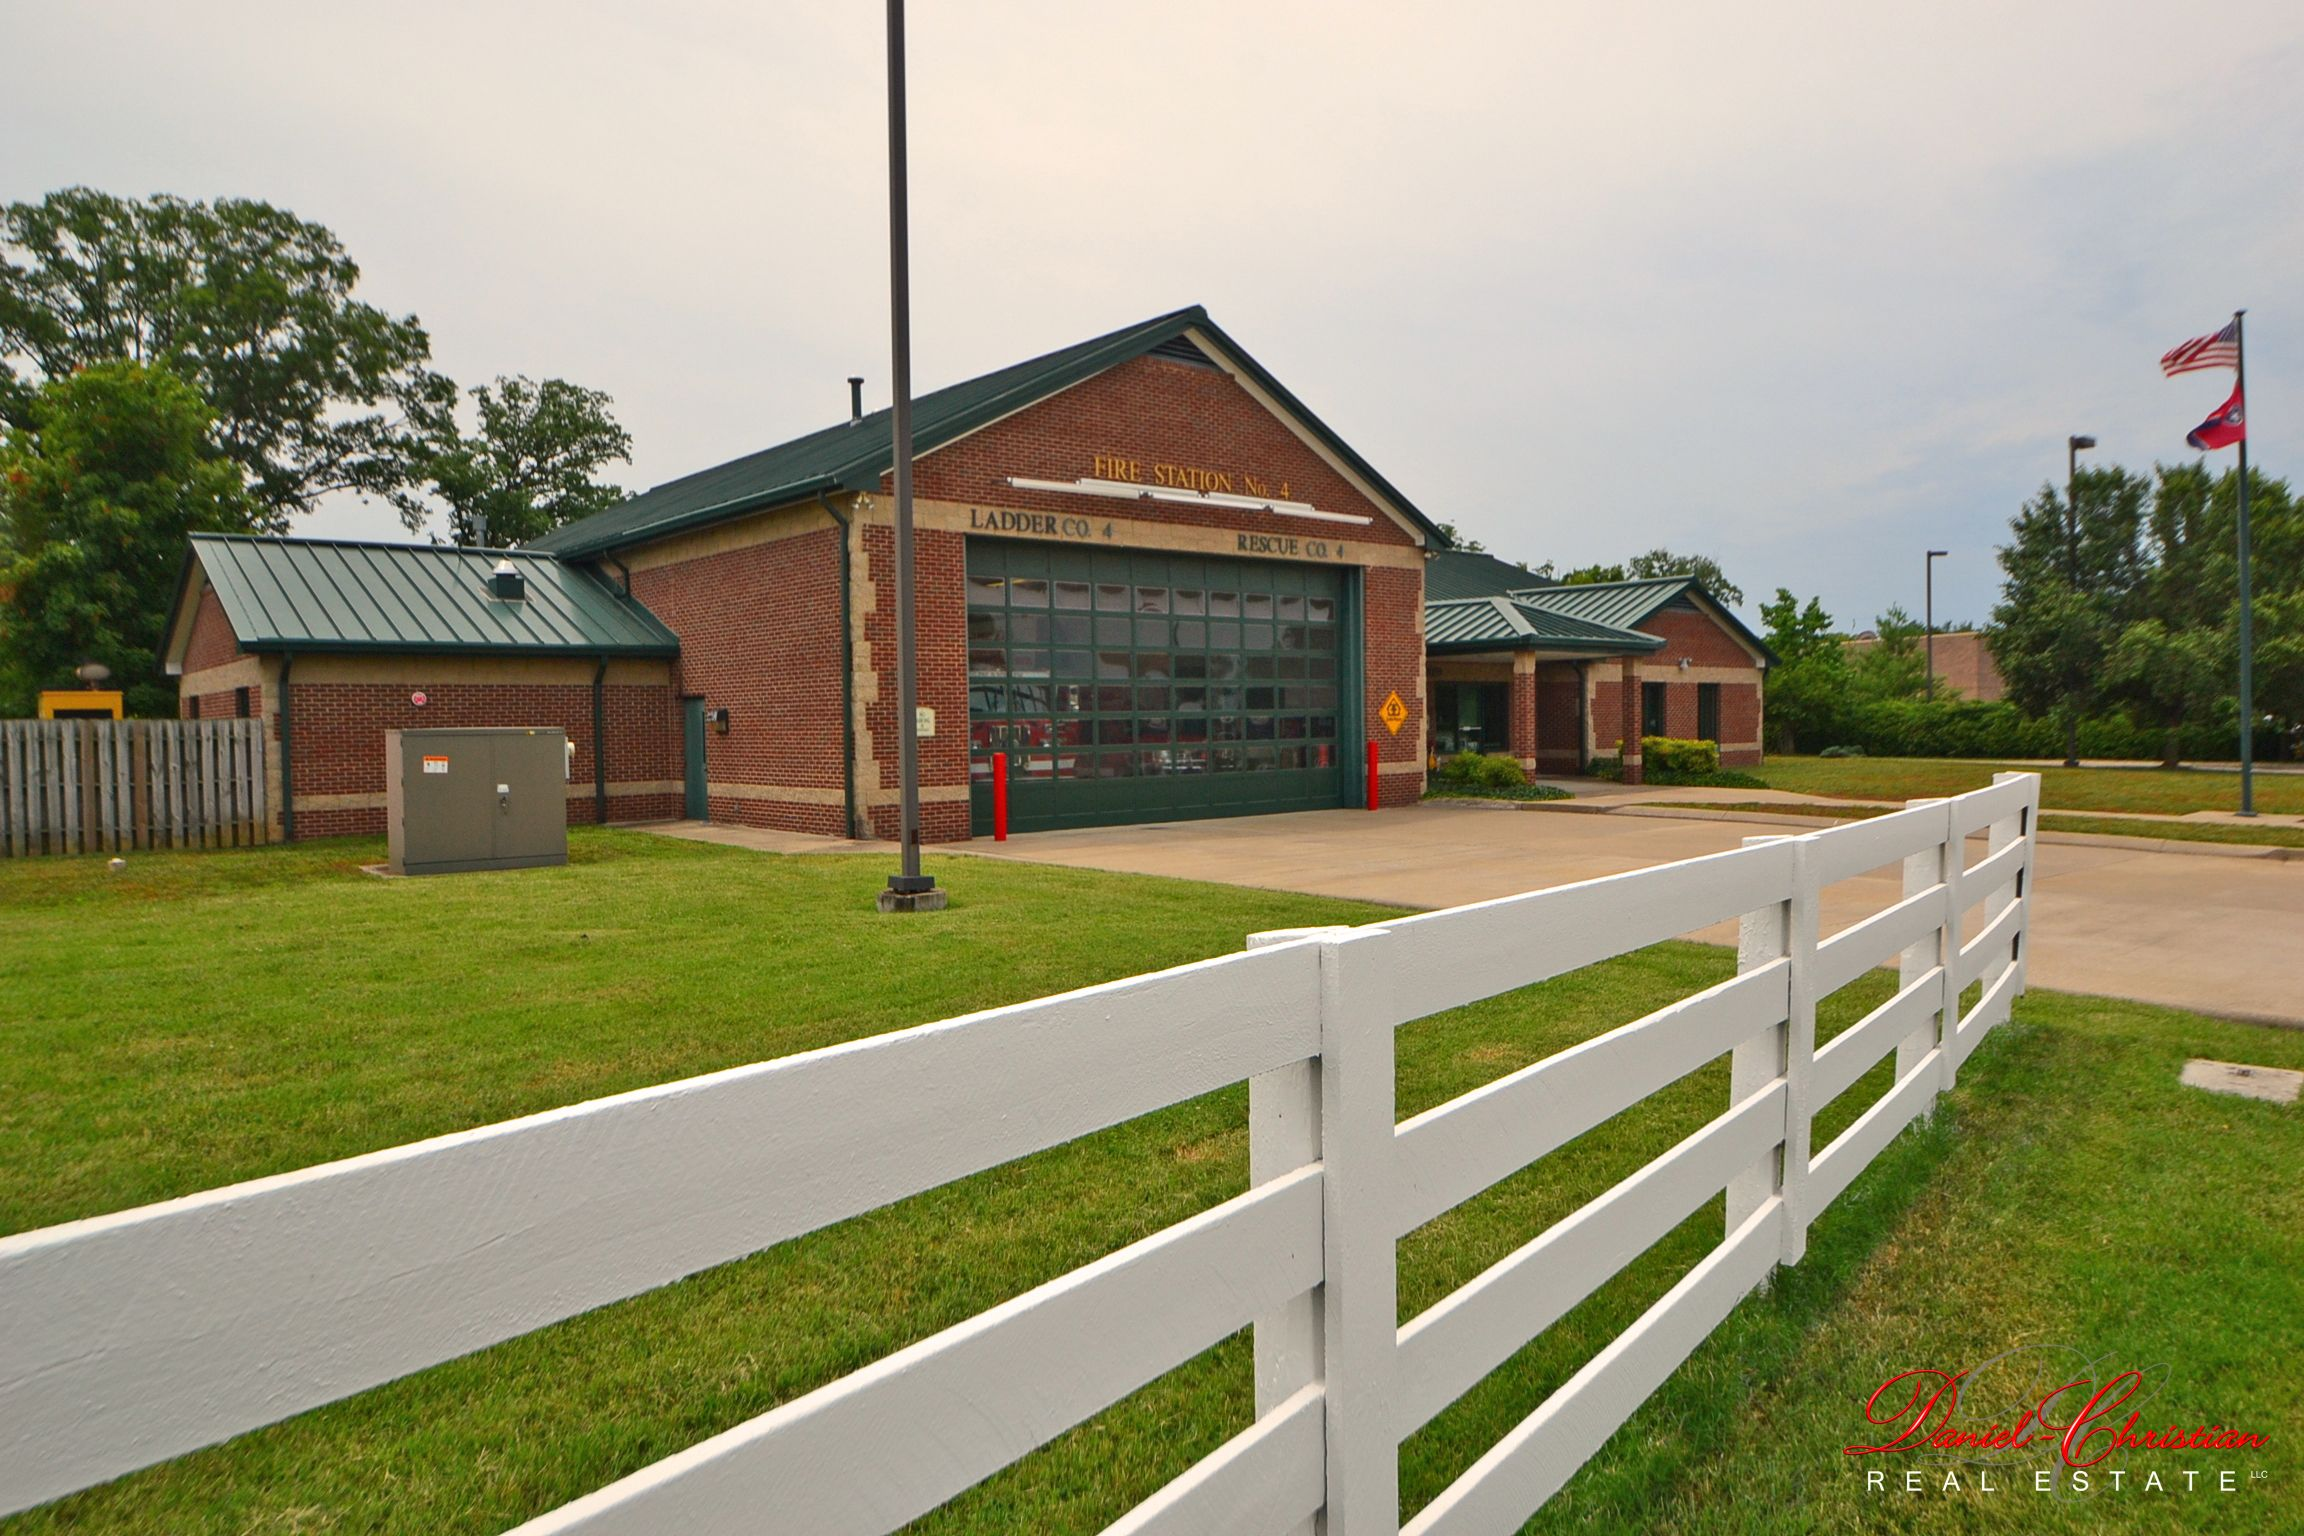 Fieldstone Farms has its own fire station located directly